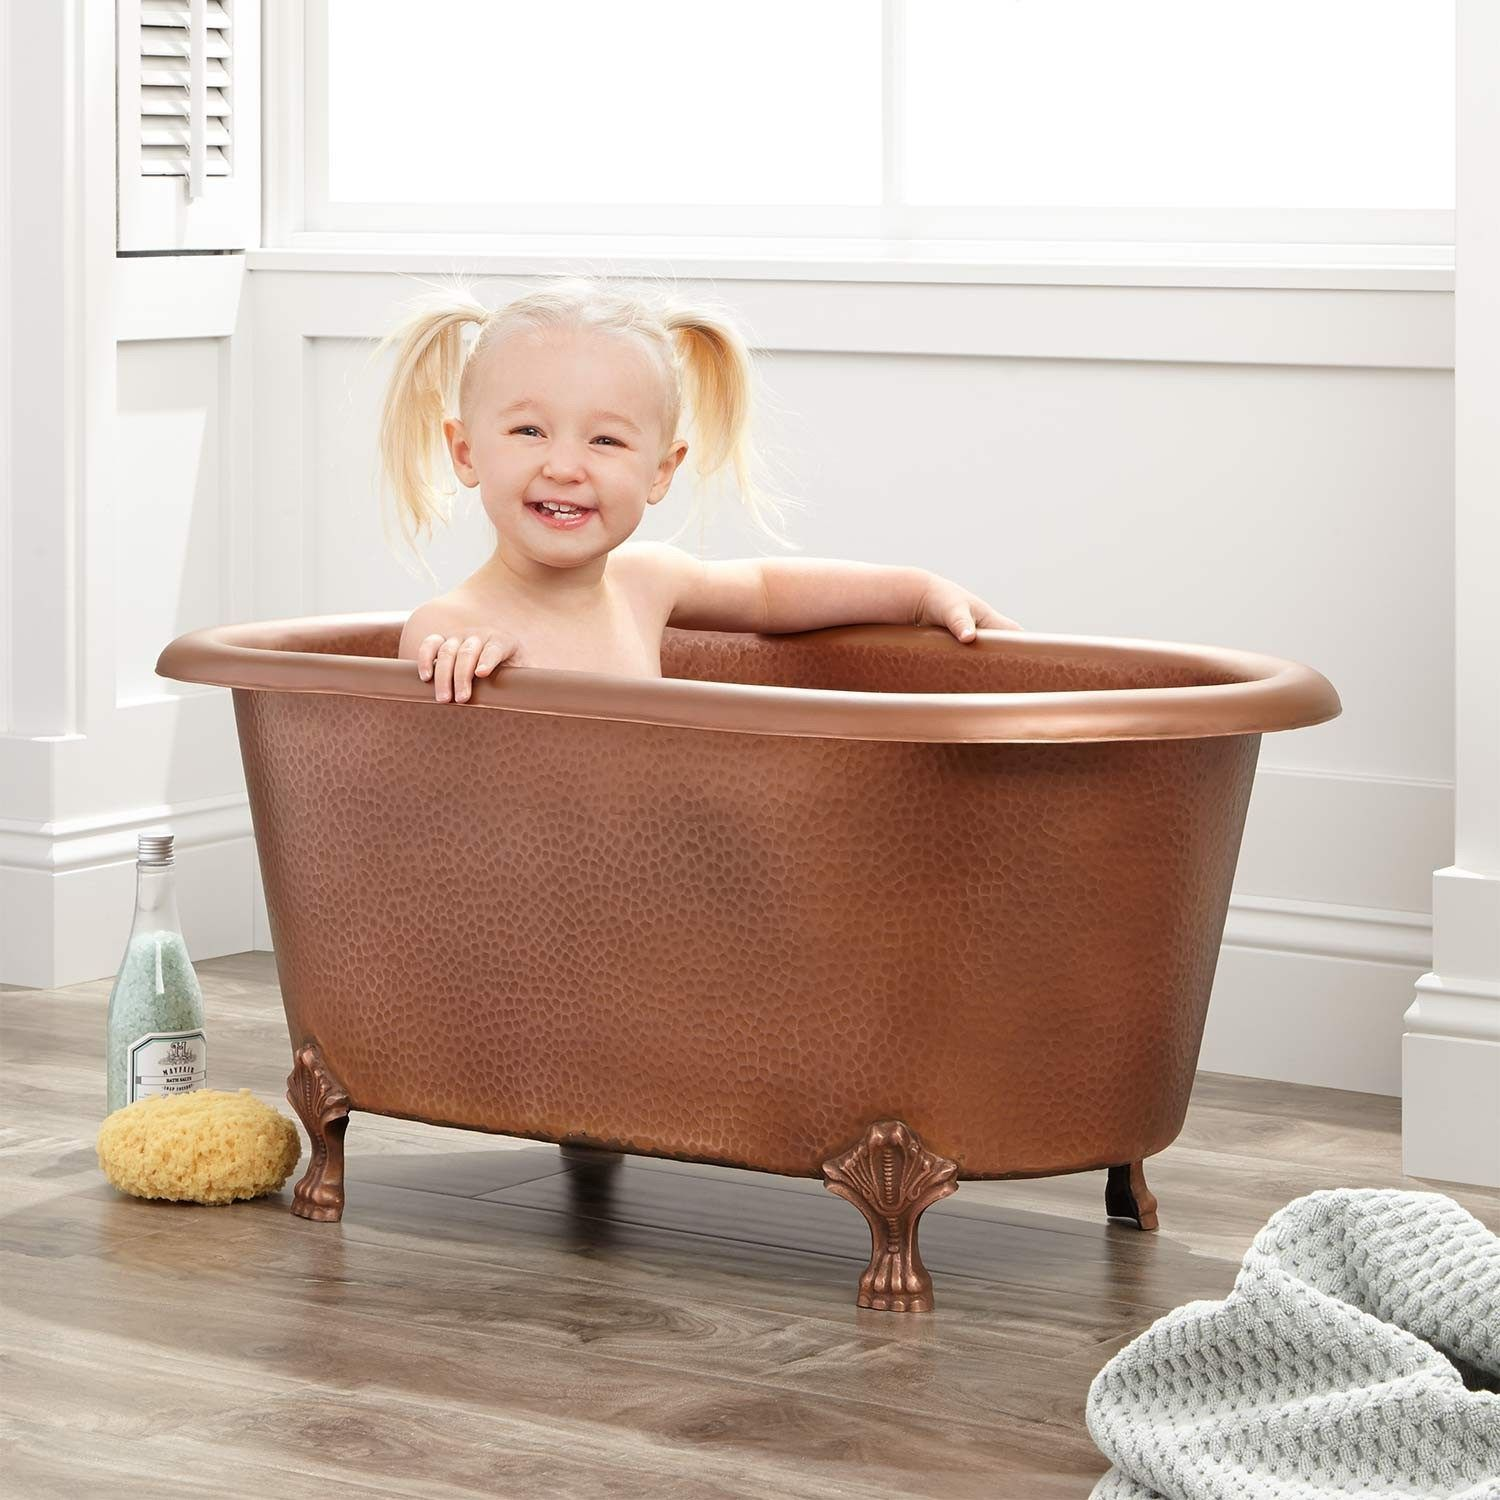 Just A Few Of The Loveliest Bathtubs I Ever Did See | Pinterest ...